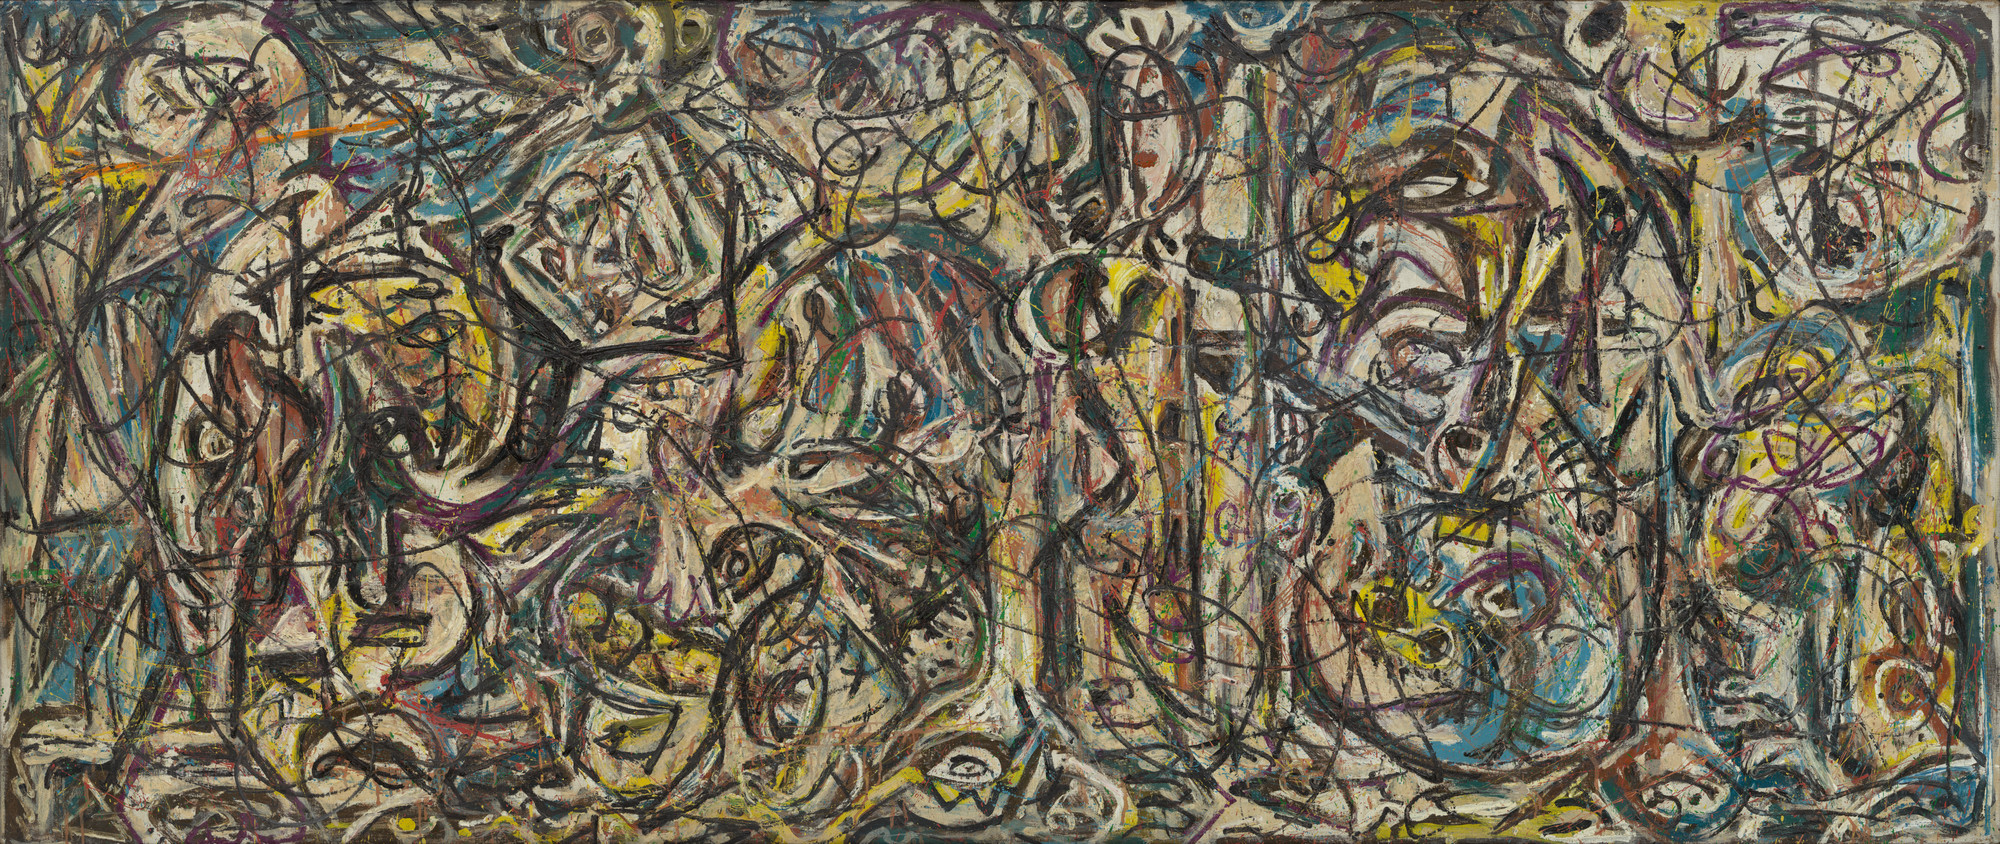 Jackson Pollock. There Were Seven in Eight. c. 1945